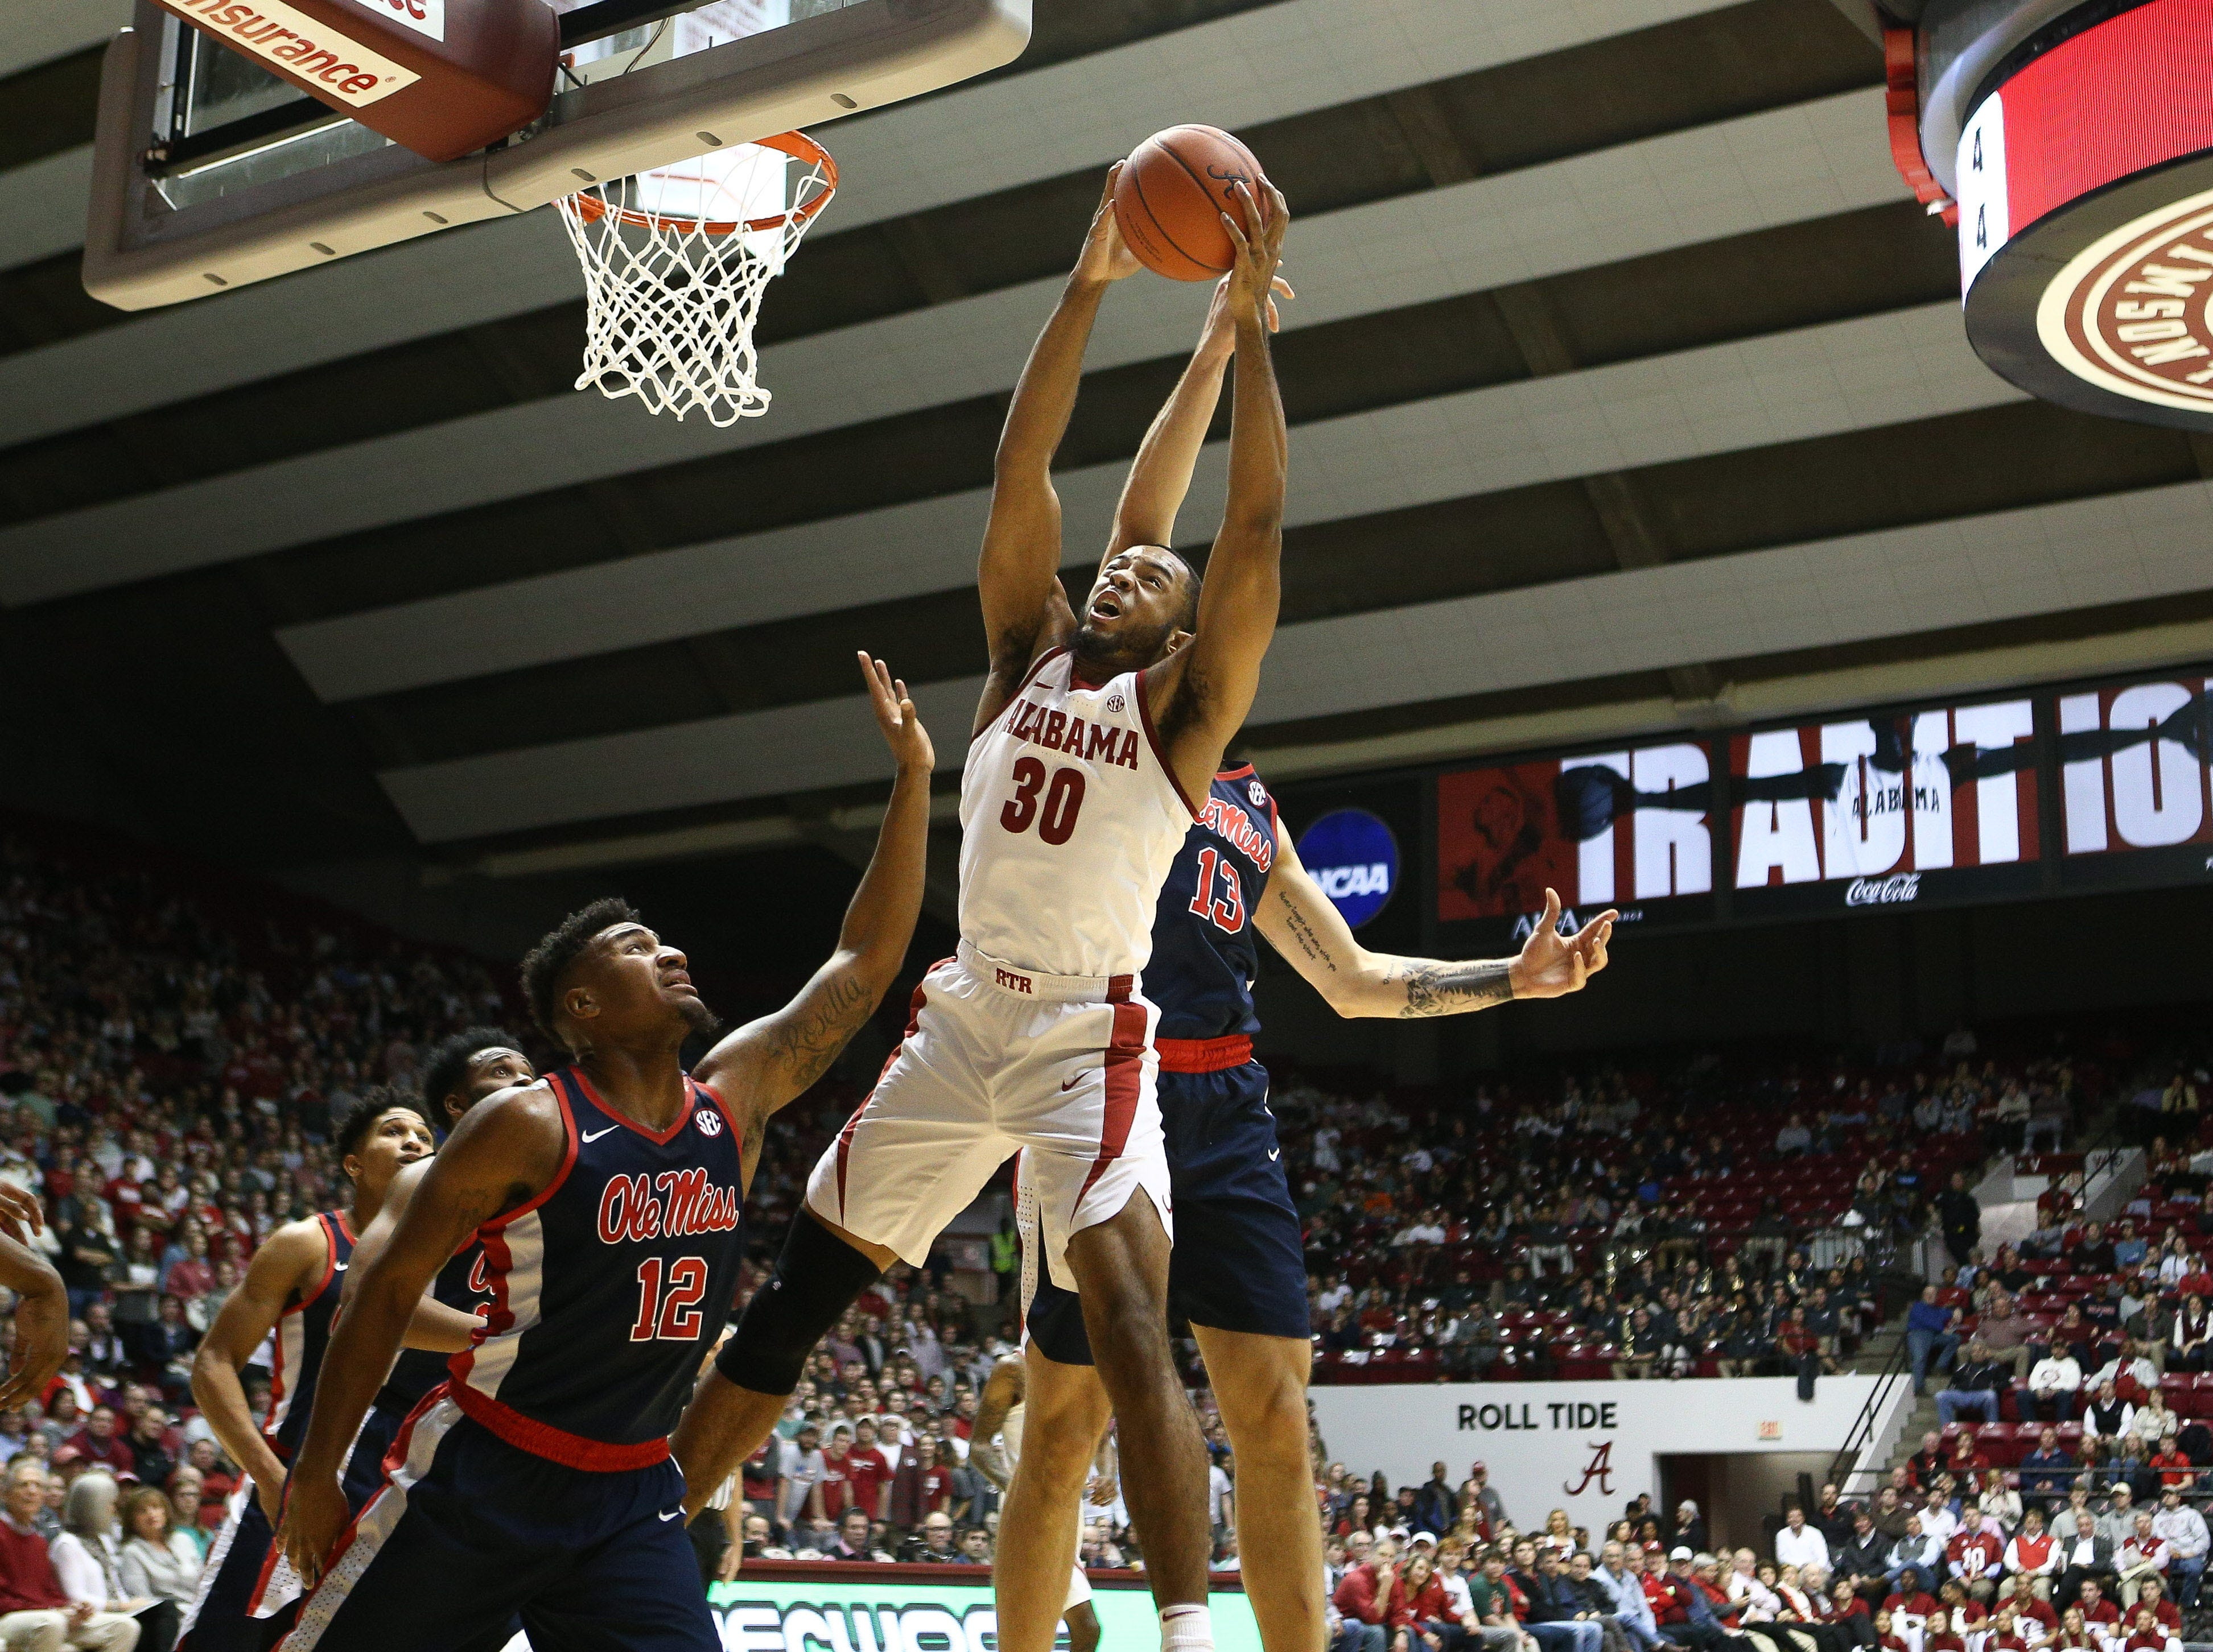 Jan 22, 2019; Tuscaloosa, AL, USA; Alabama Crimson Tide forward Galin Smith (30) pulls down a rebound against Mississippi Rebels center Dominik Olejniczak (13) during the second half at Coleman Coliseum. Mandatory Credit: Marvin Gentry-USA TODAY Sports